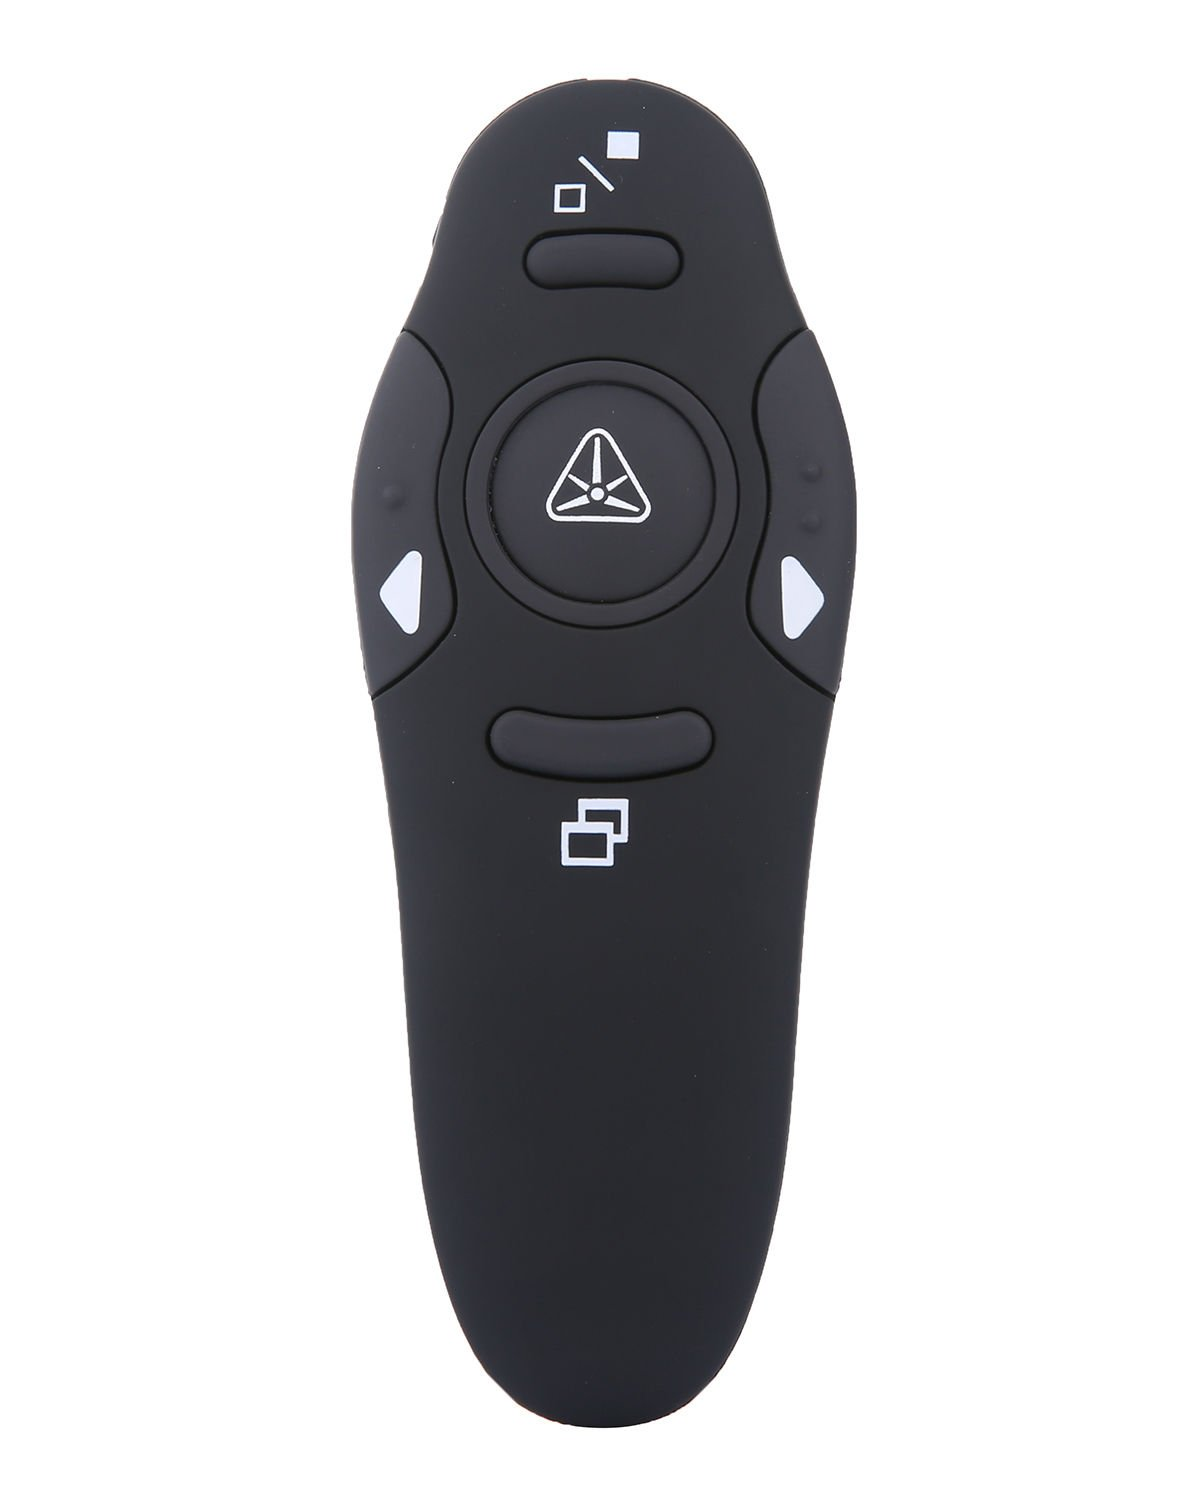 BEBONCOOL RF 2.4GHz Wireless Presenter Remote Presentation USB Control PowerPoint PPT Clicker QIXUN TECH D100